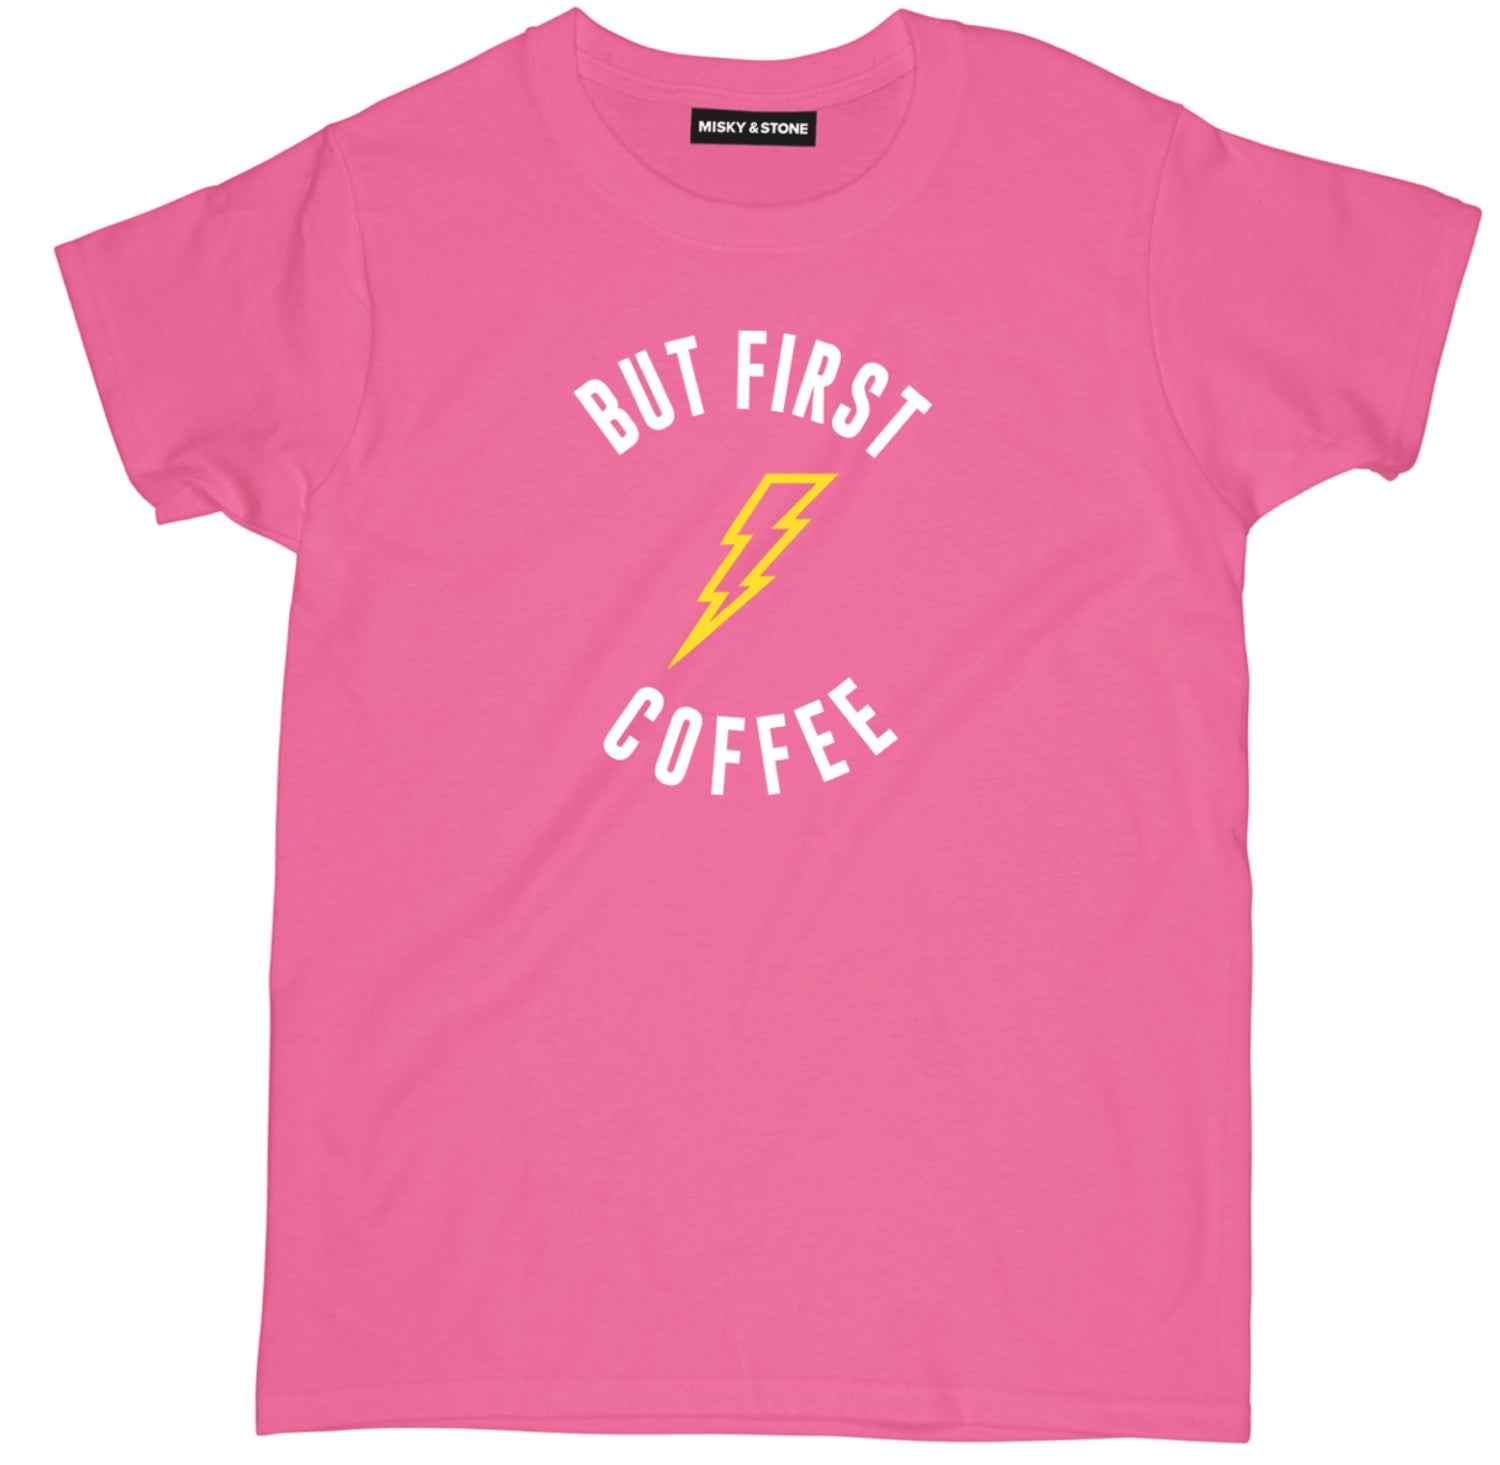 But First Coffee Tee Shirt